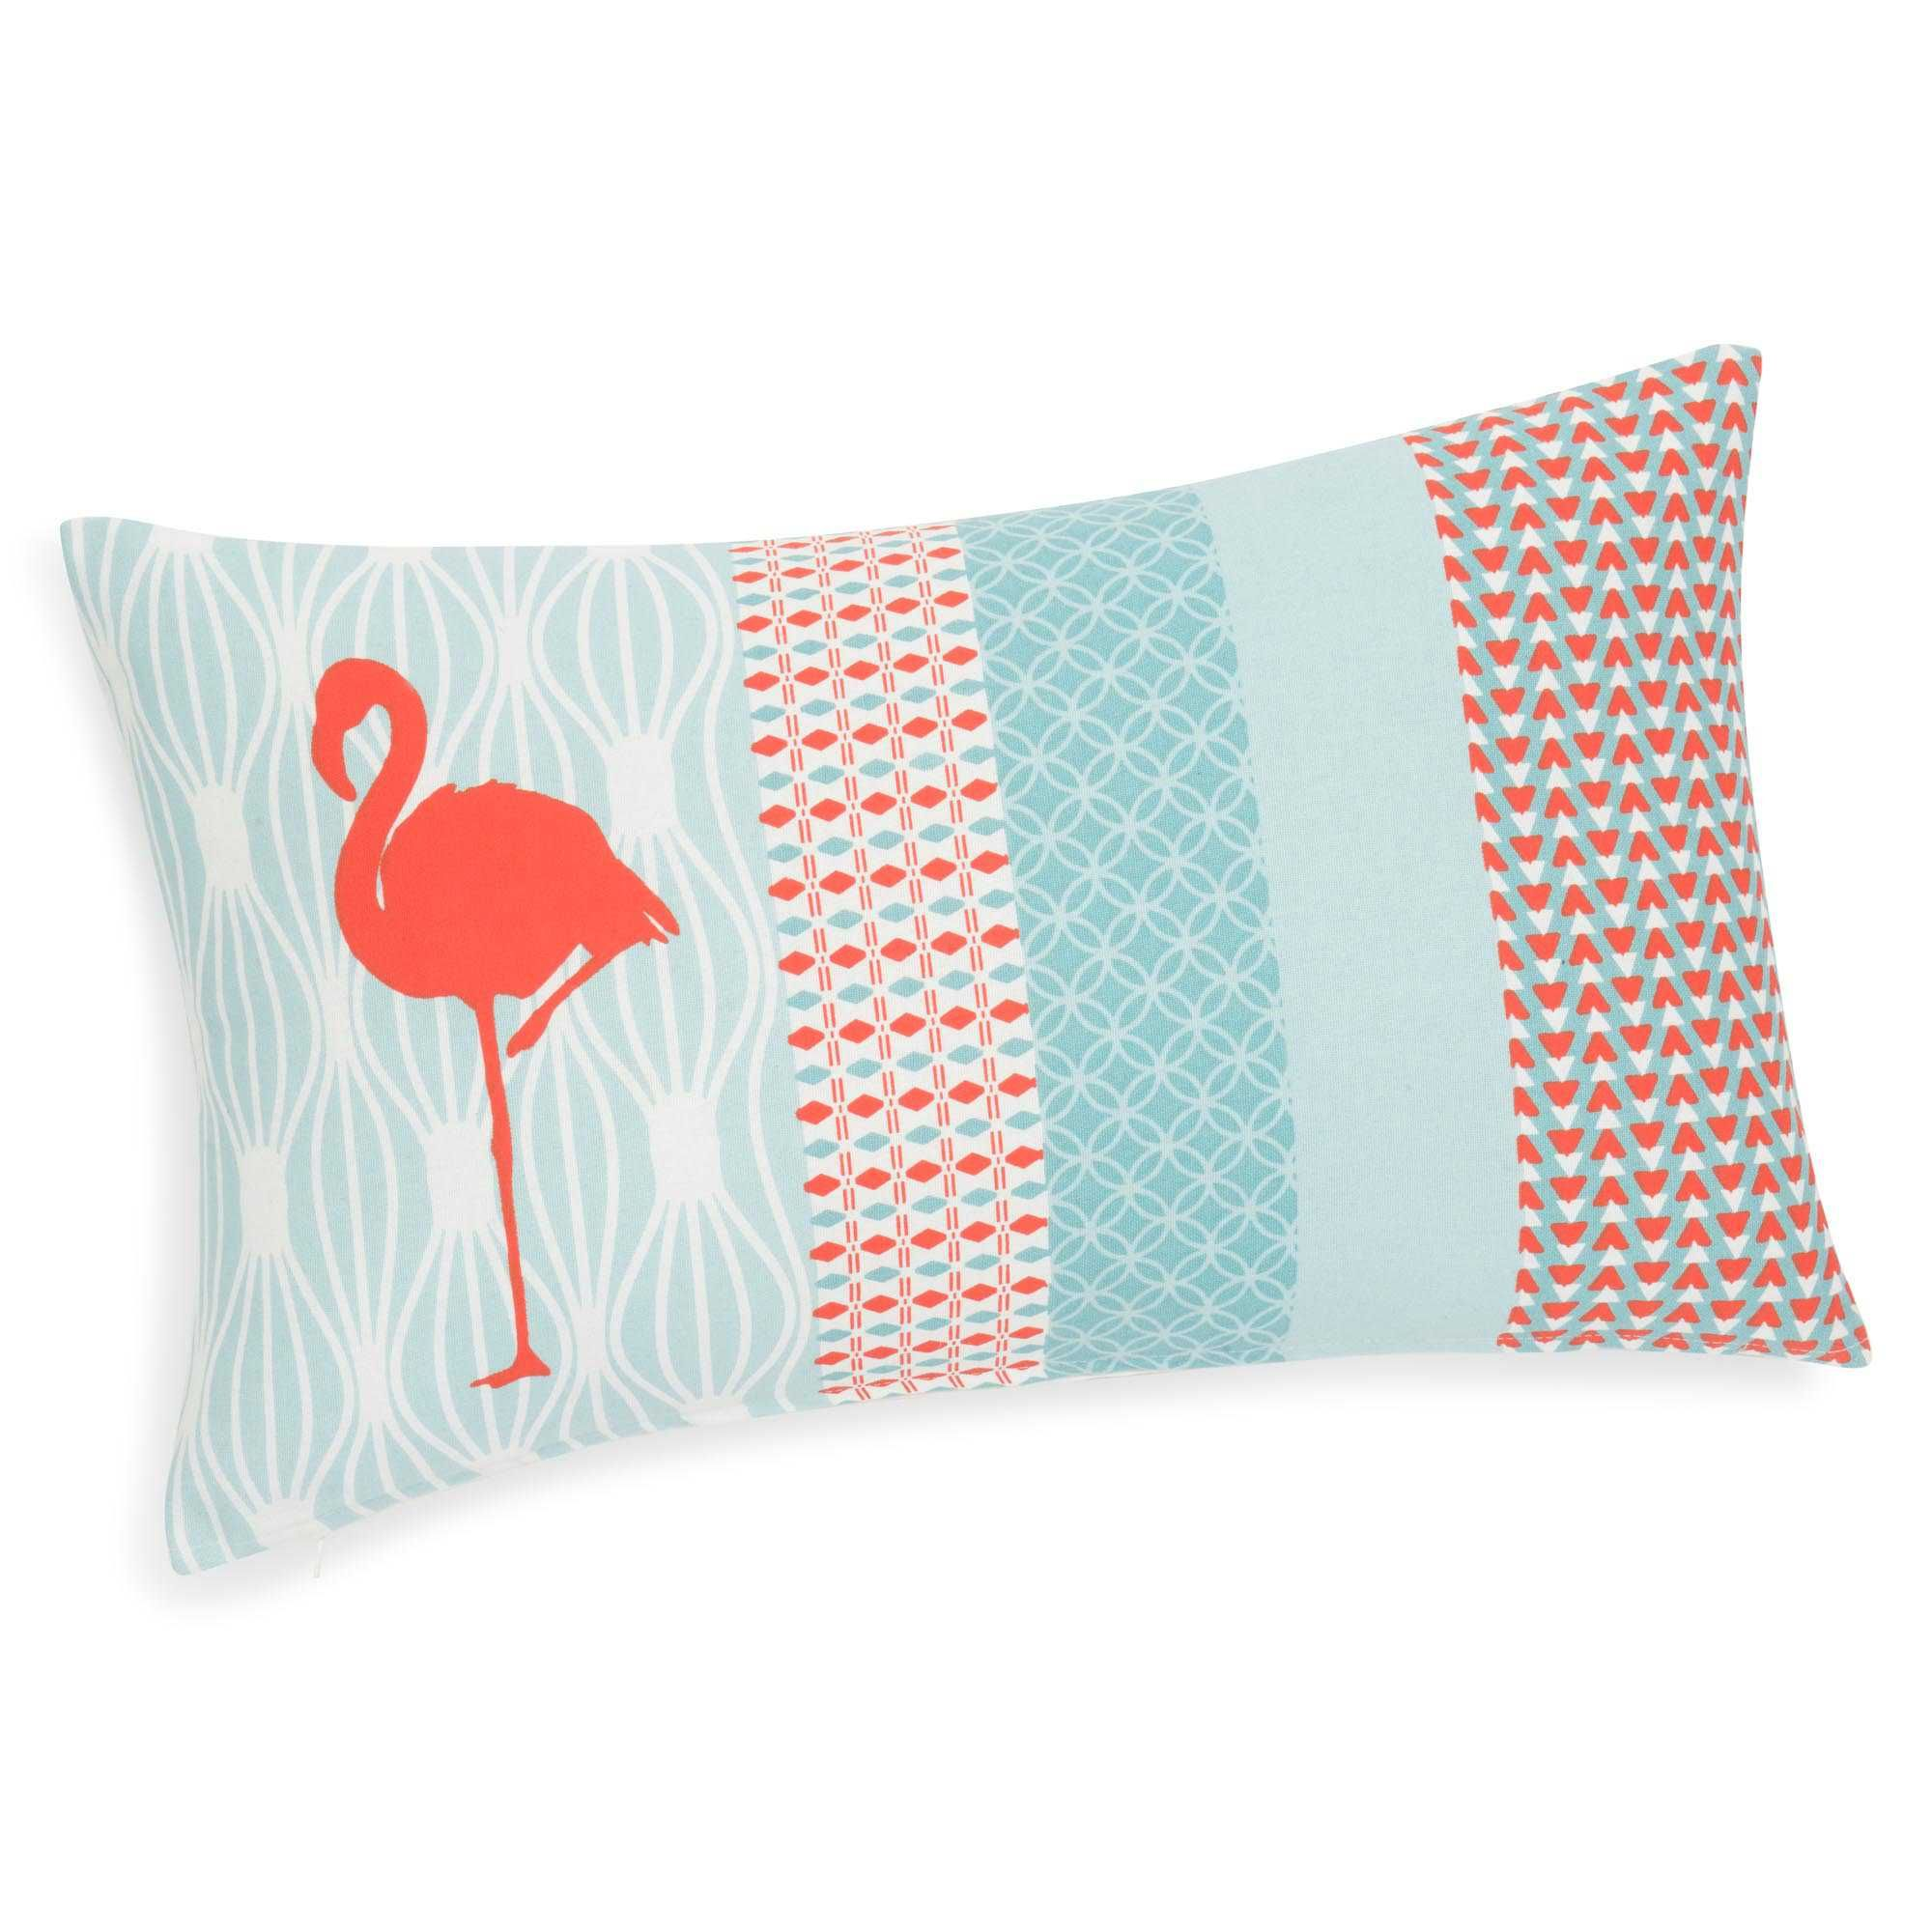 housse de coussin en coton 30 x 50 cm flamingo maisons. Black Bedroom Furniture Sets. Home Design Ideas